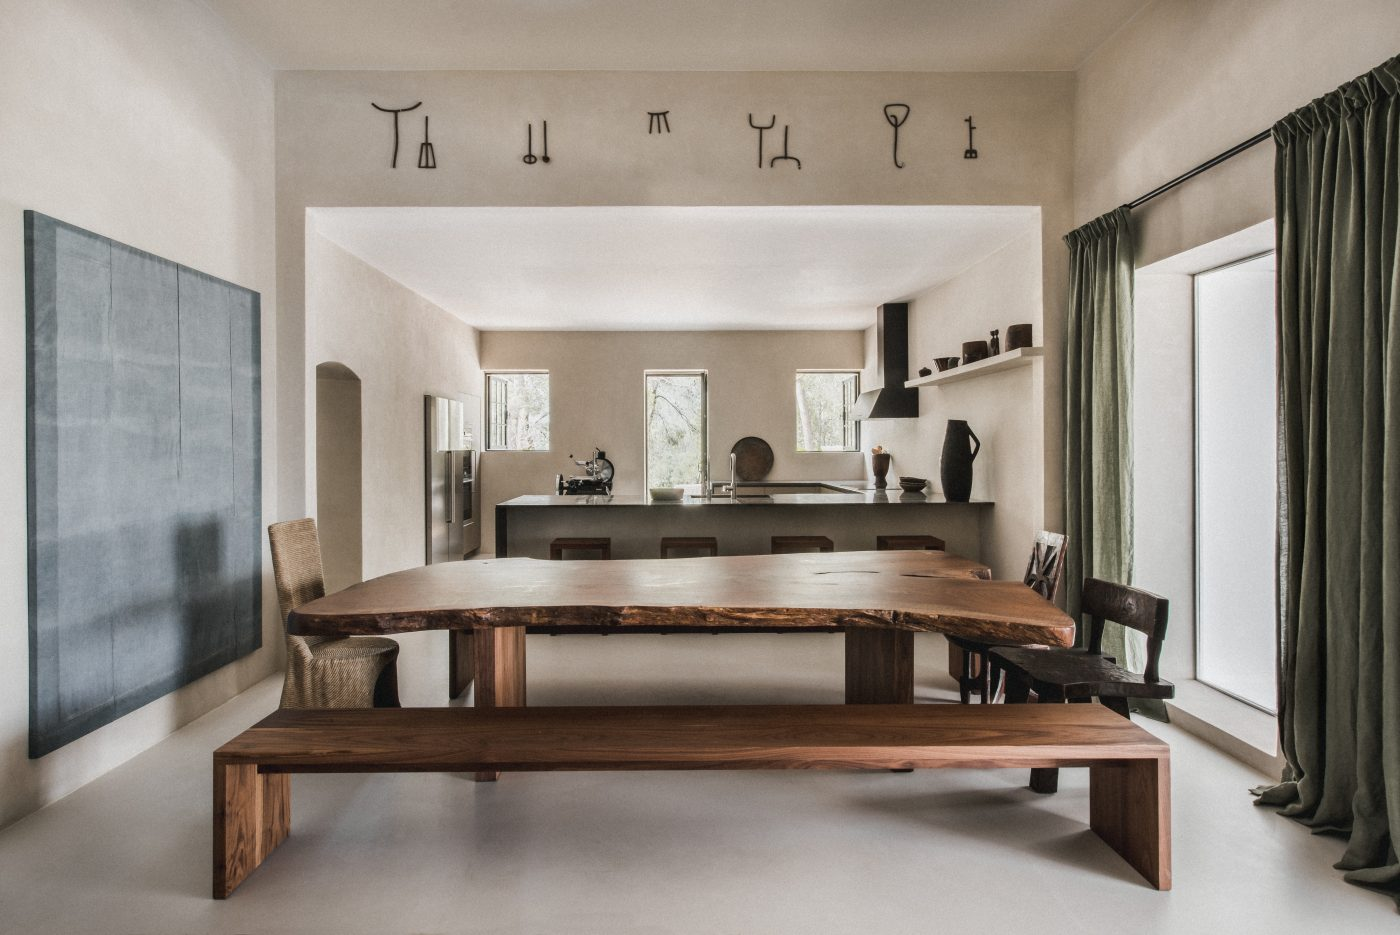 Dining room designed by Hollie Bowden featuring a walnut table